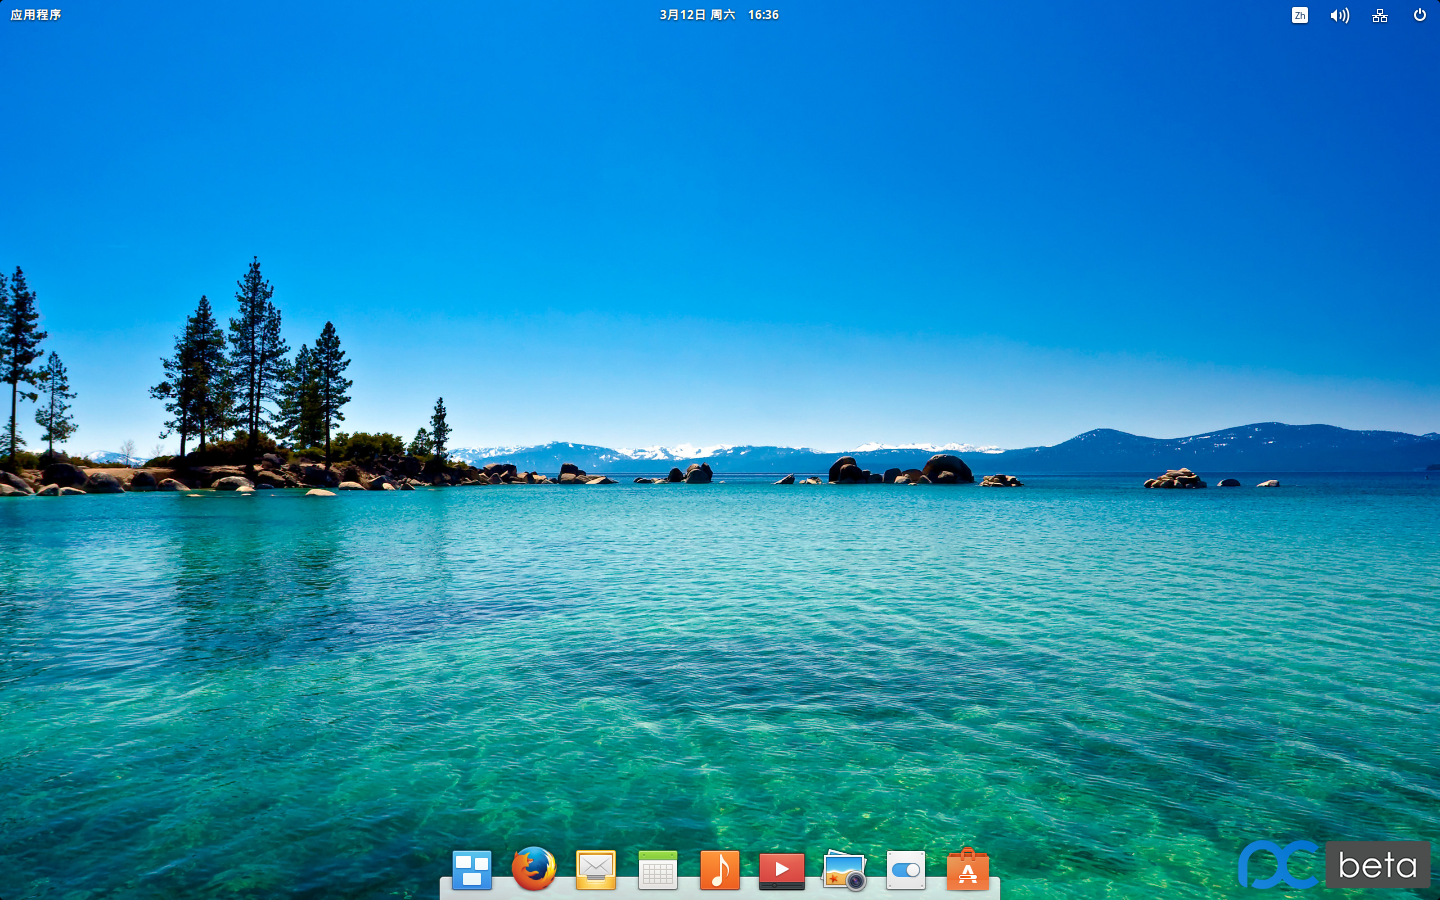 Elementary Os-2016-03-12-16-36-55.png